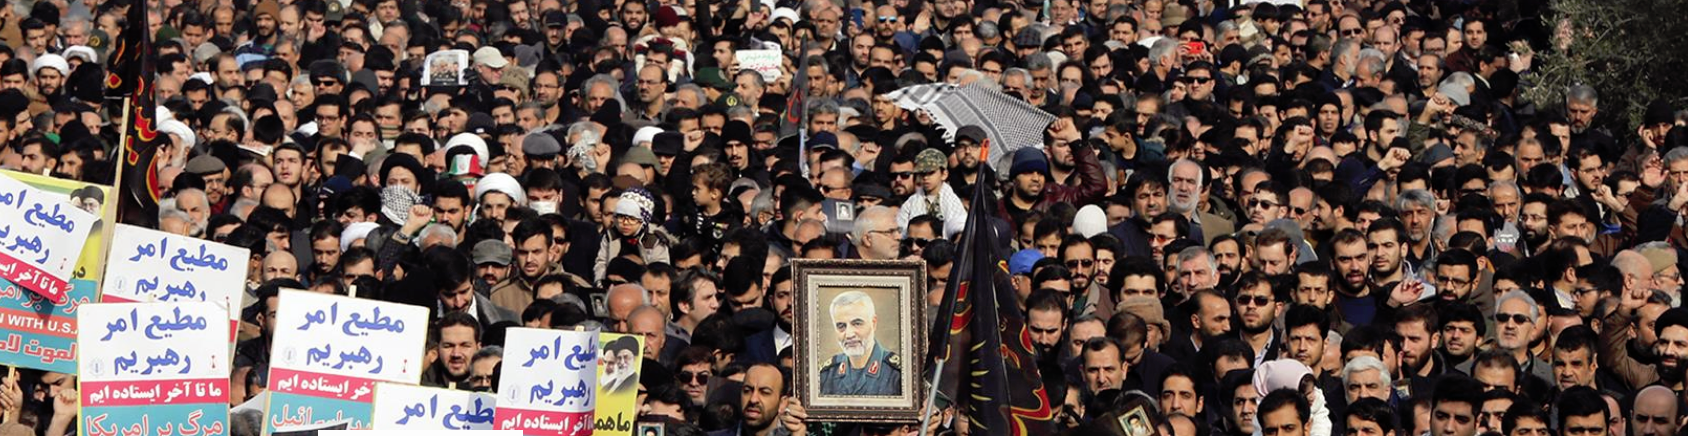 Iran's Soleimani killed in US air raid: All the latest updates